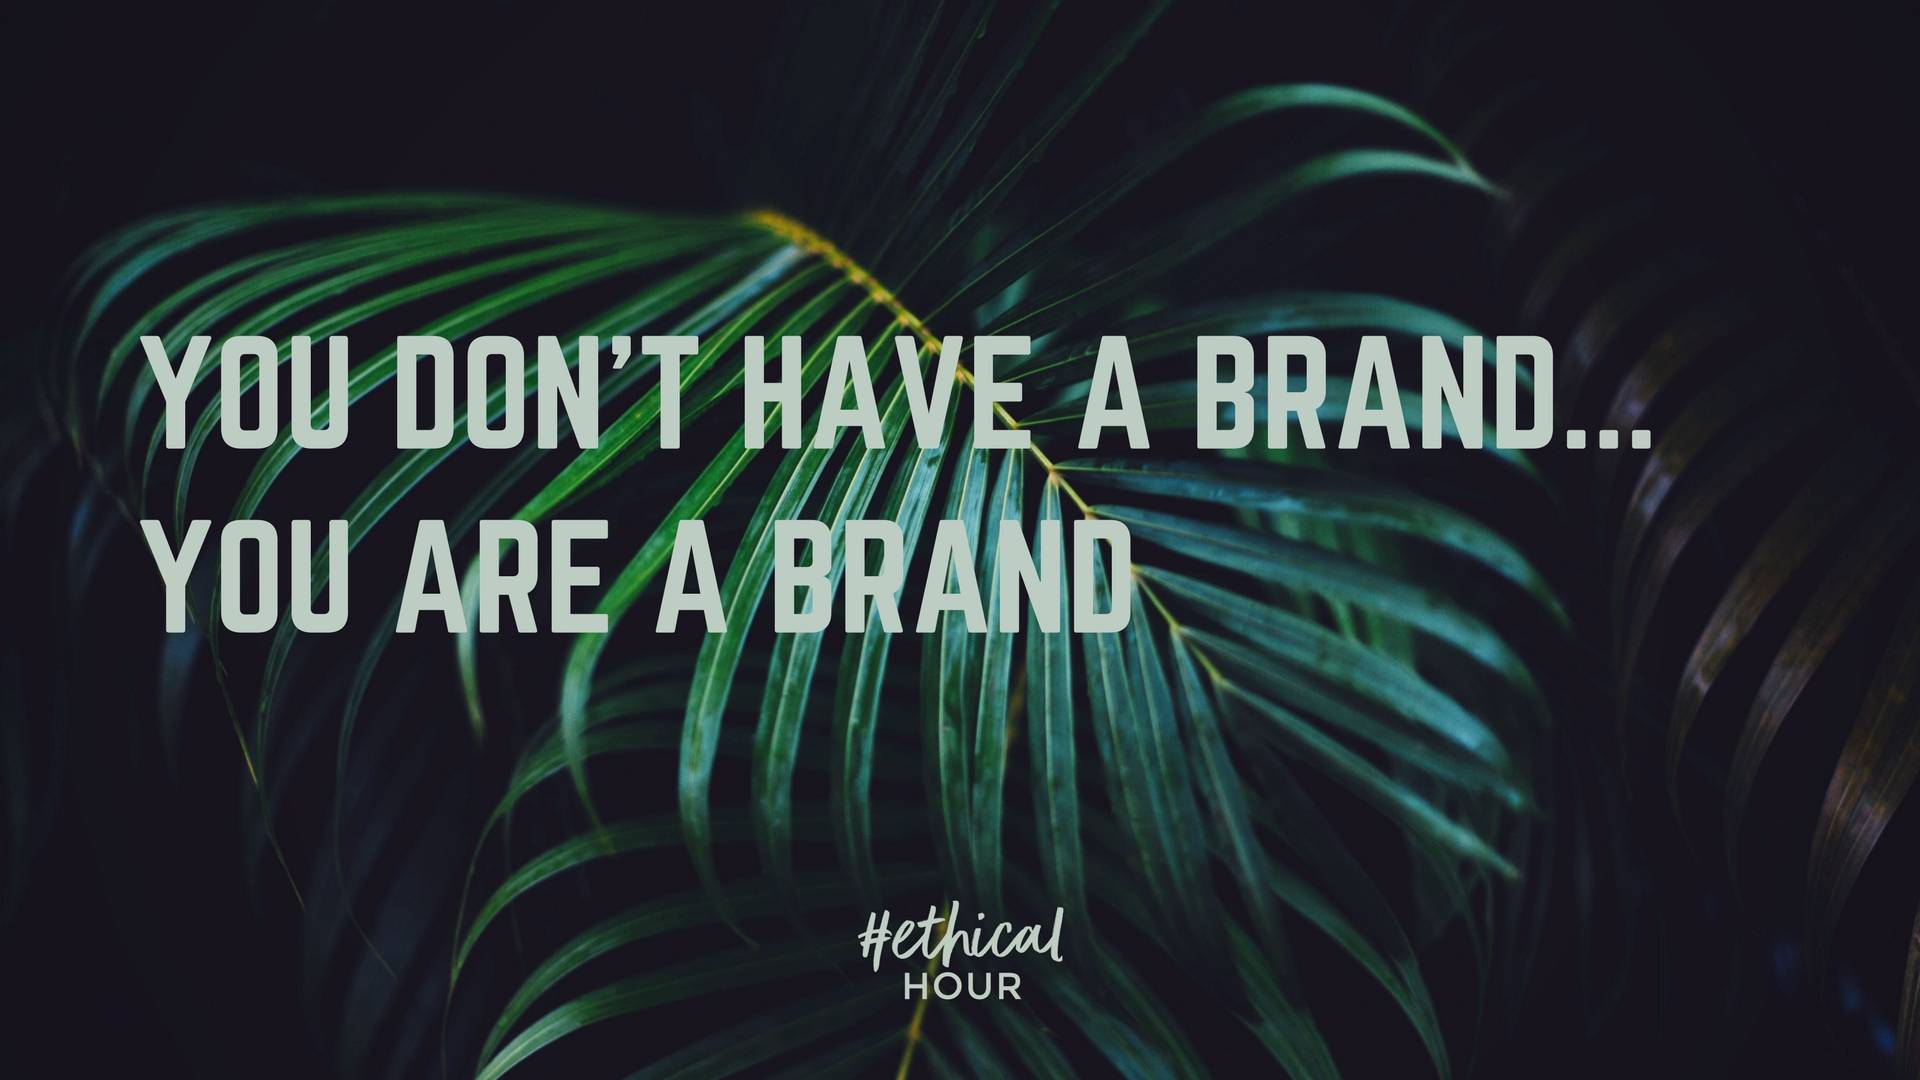 Branding Quotes How To Build A Brand  Create A Marketing Strategy And Build A Brand